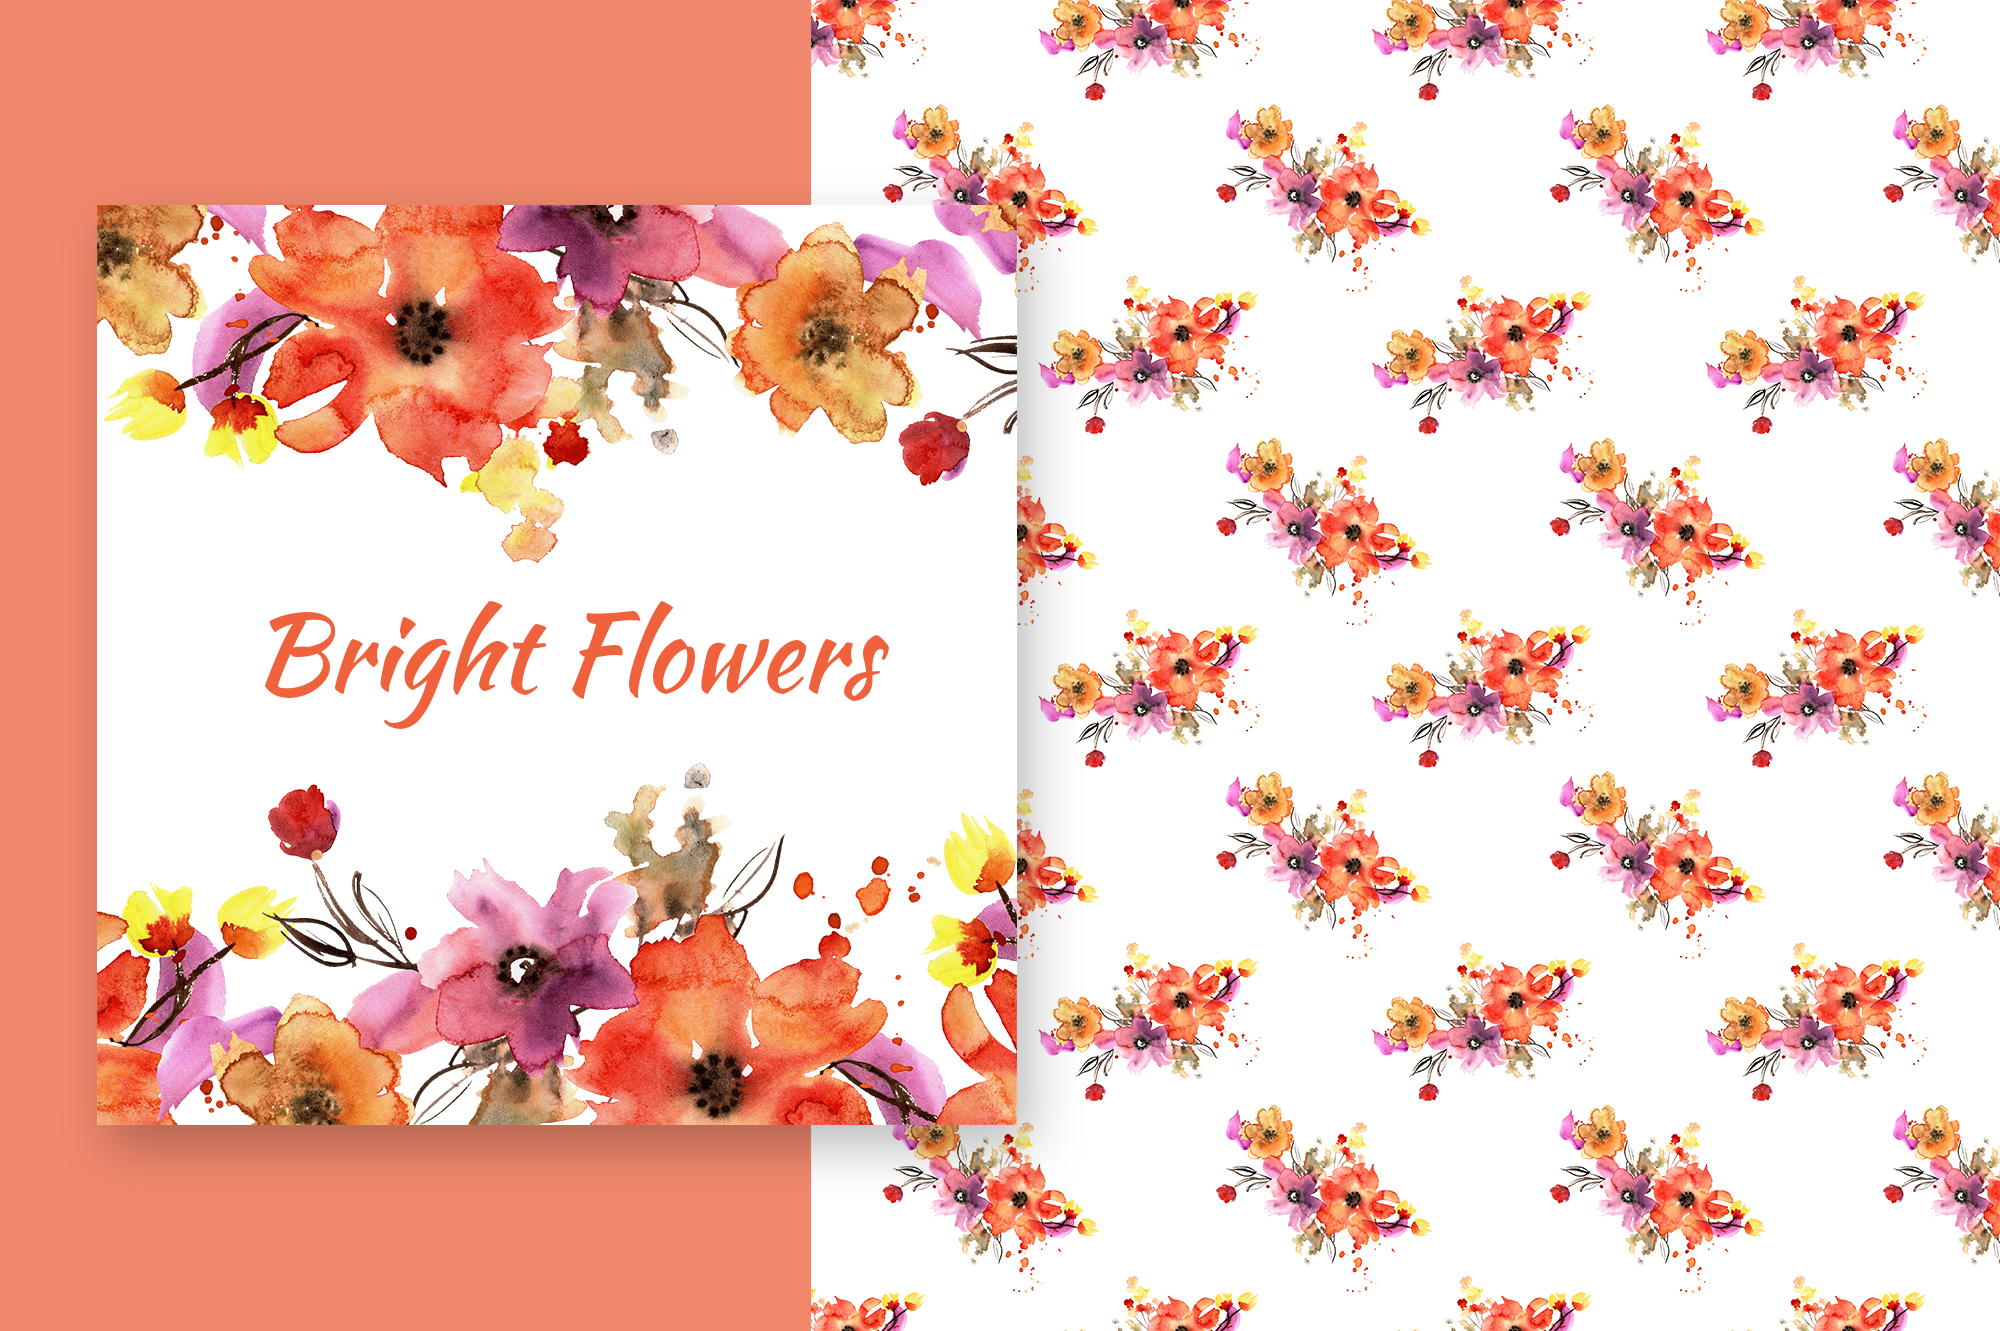 Bright flowers example image 5